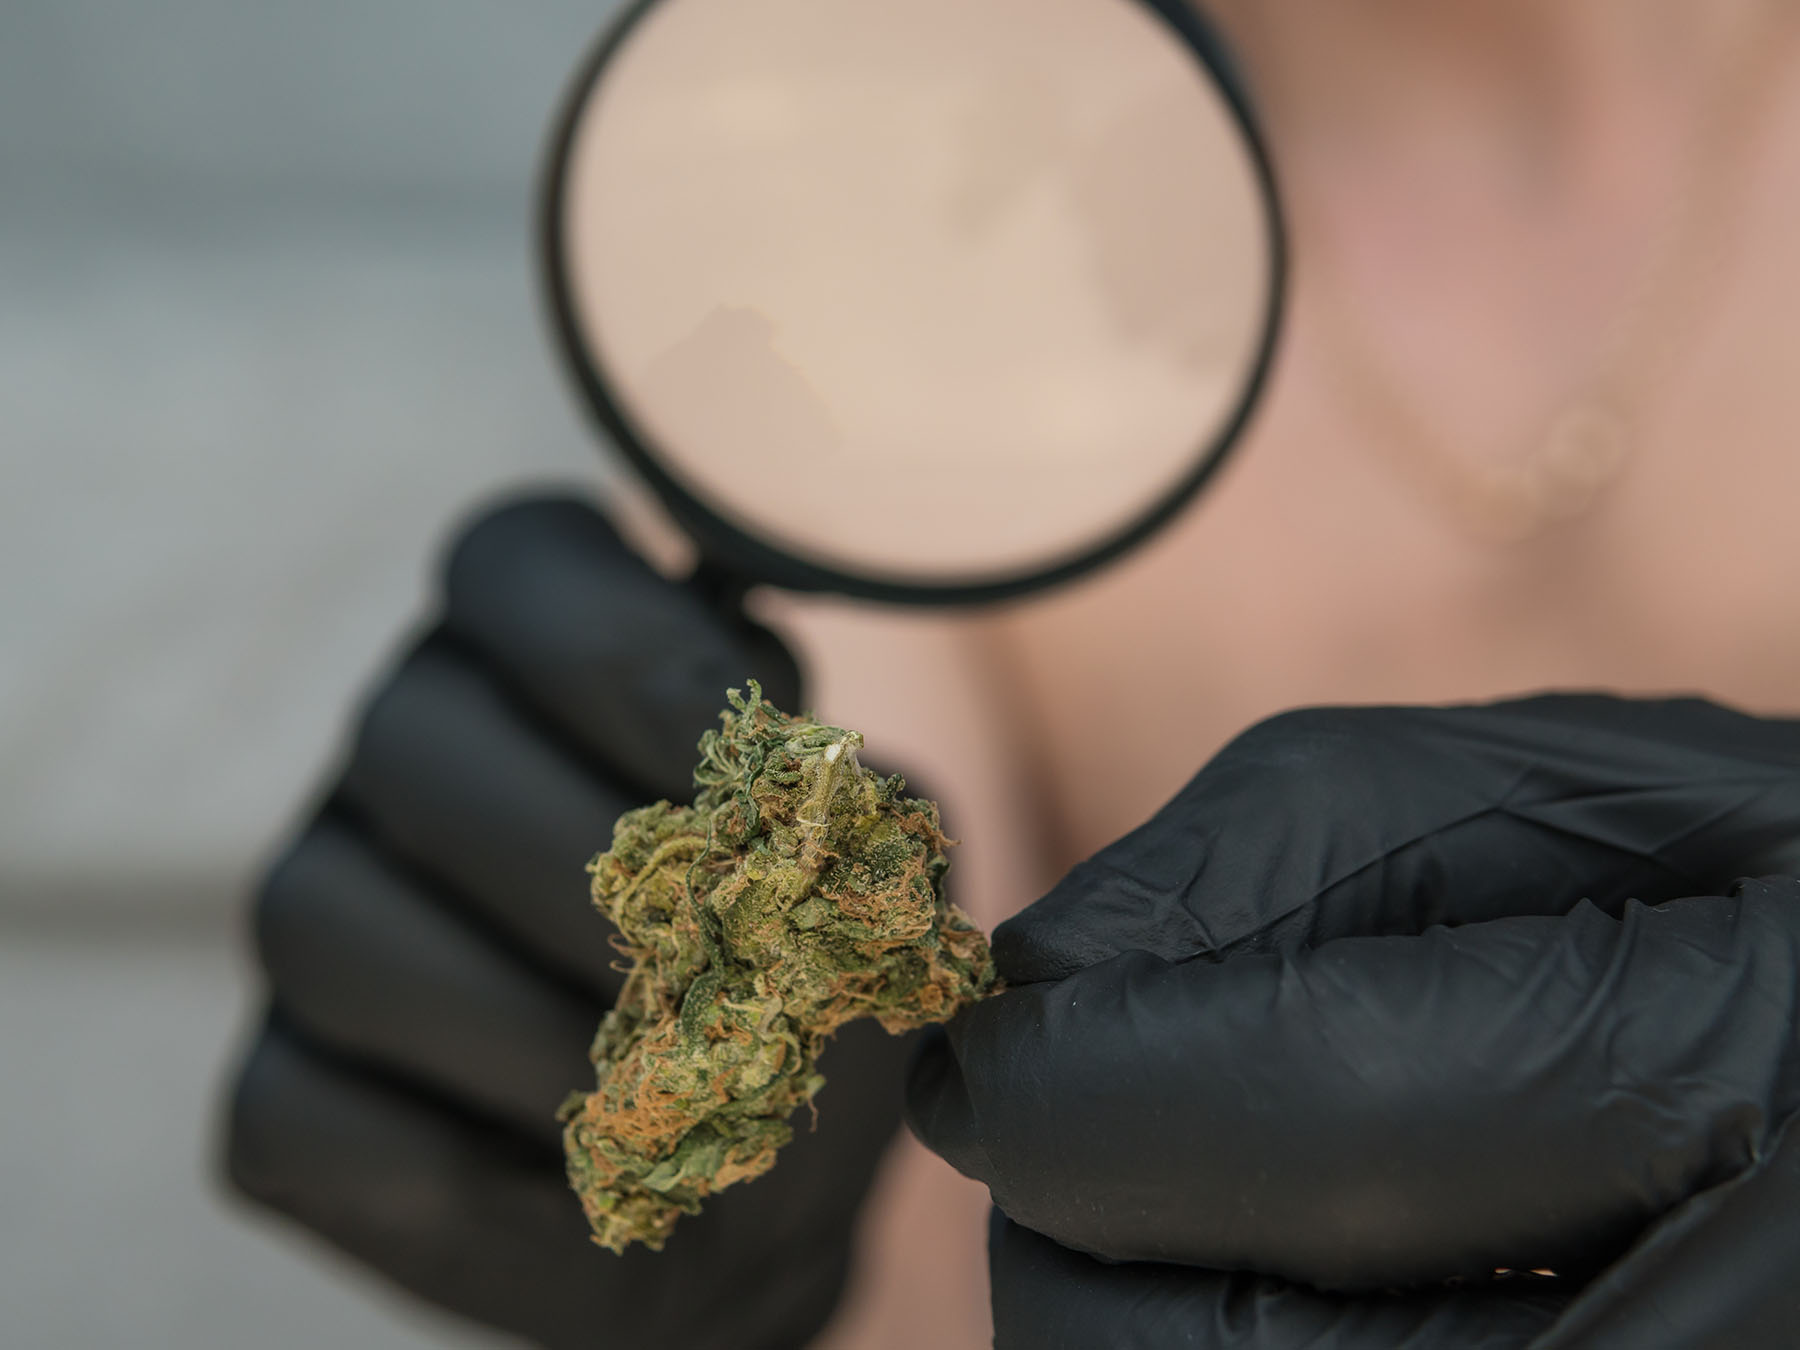 person inspecing medical cannabis bud